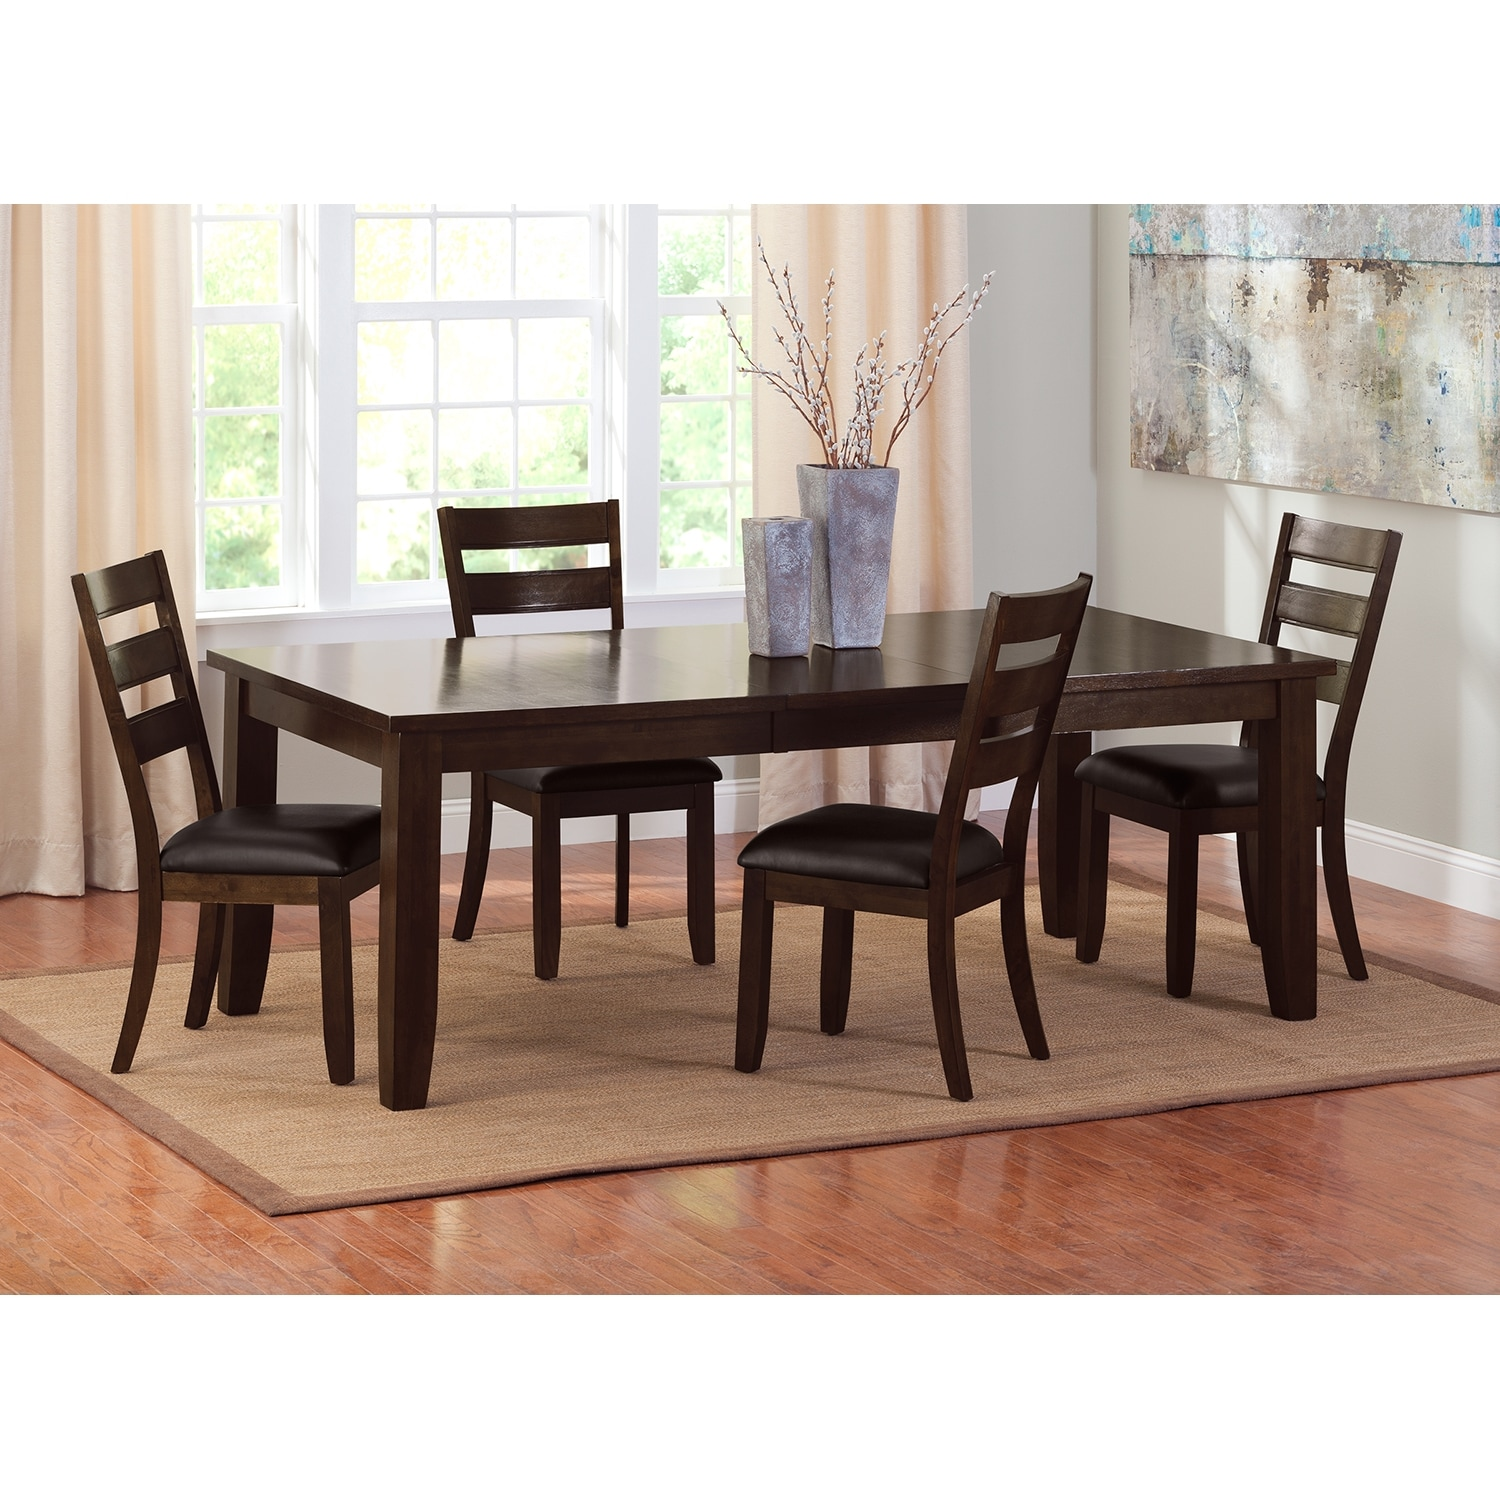 abaco table and 4 chairs brown american signature